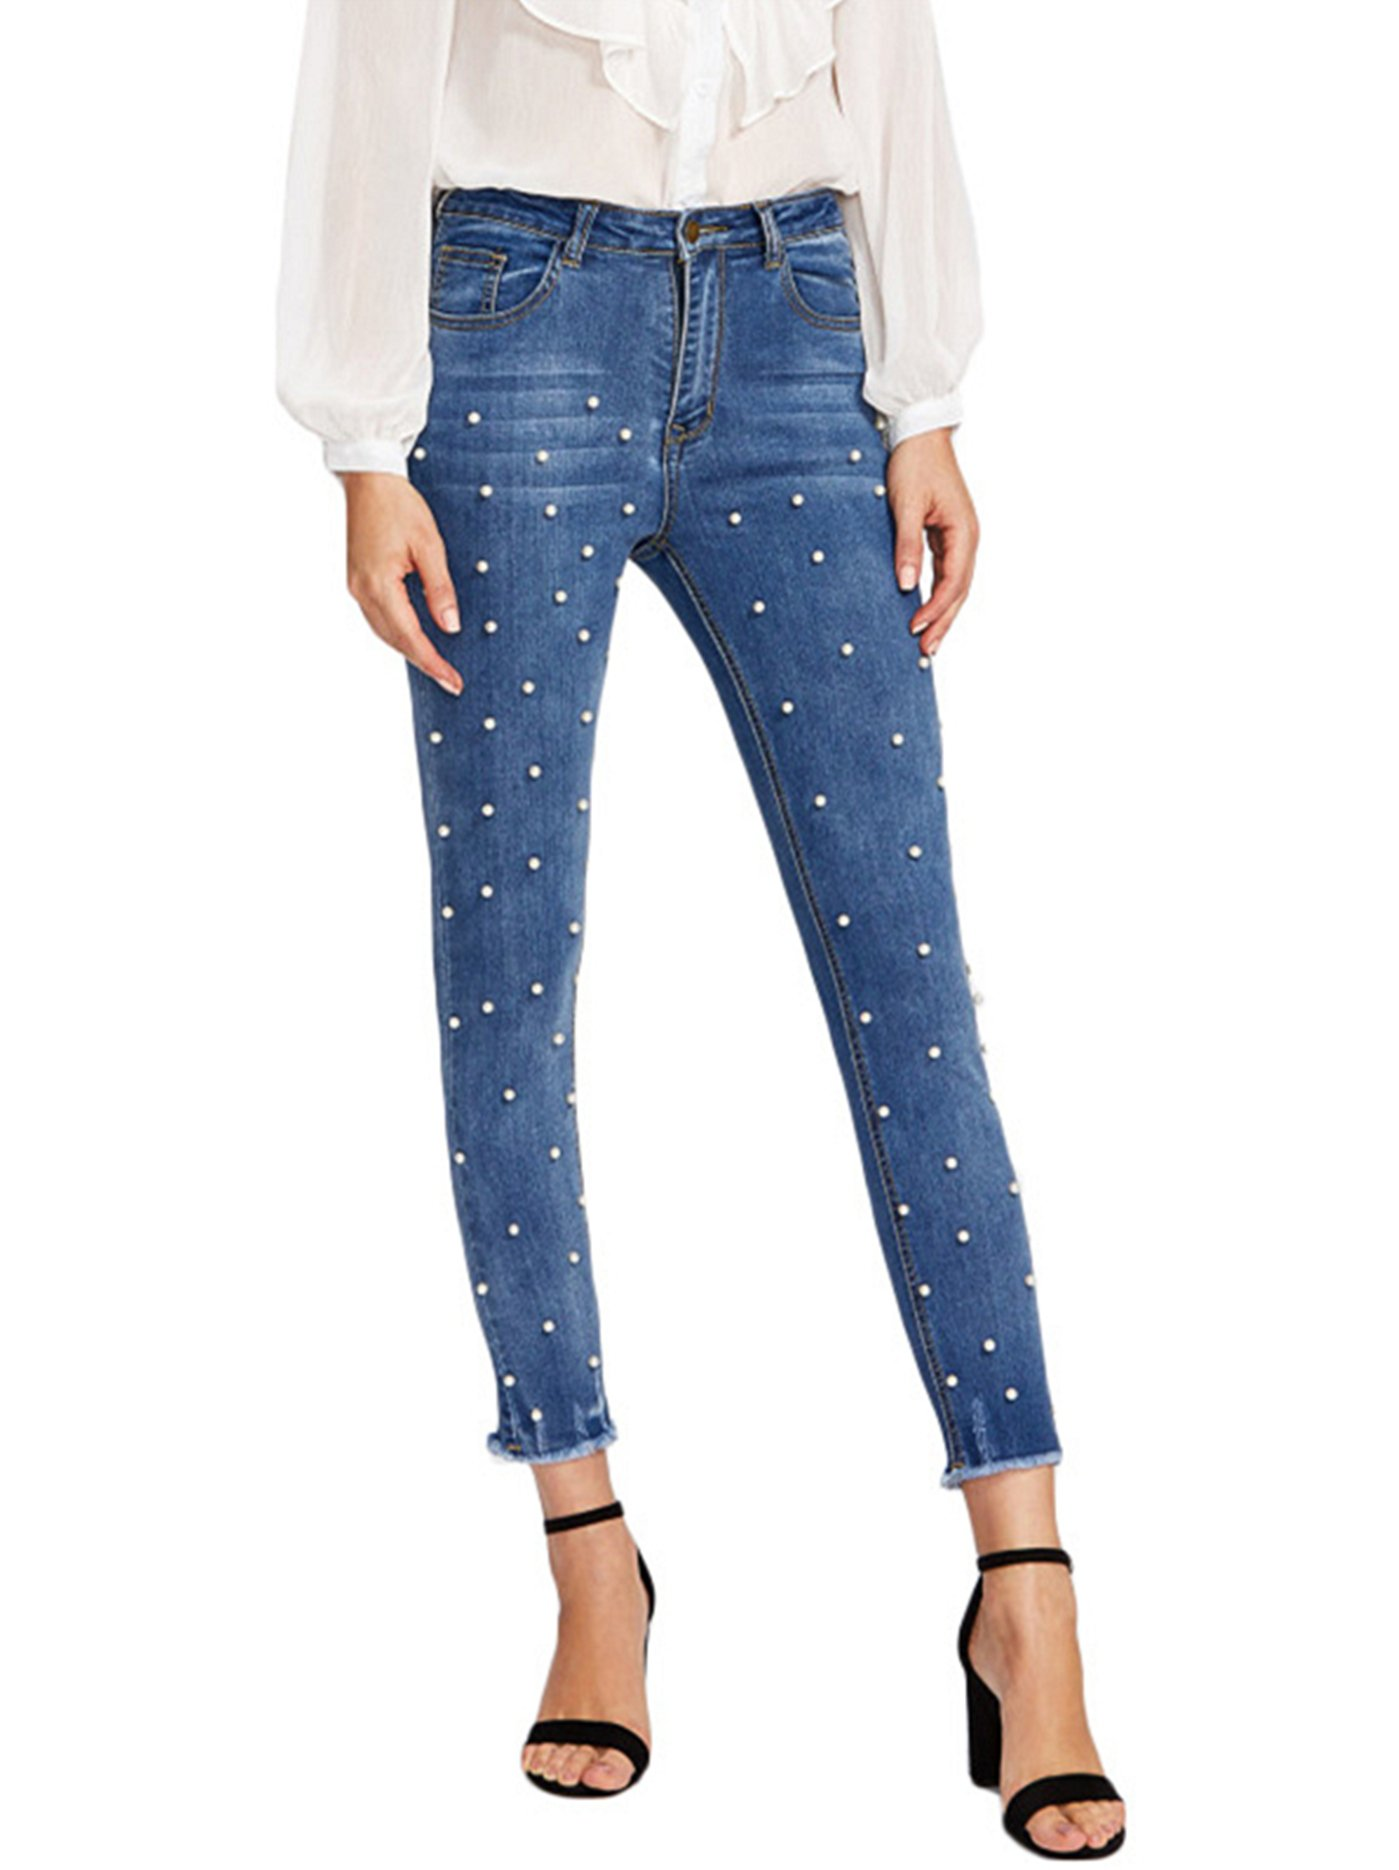 Women's Classic High Waist Slimming Fit Stretch Pearl Jeggings Skinny Jeans Blue US 10